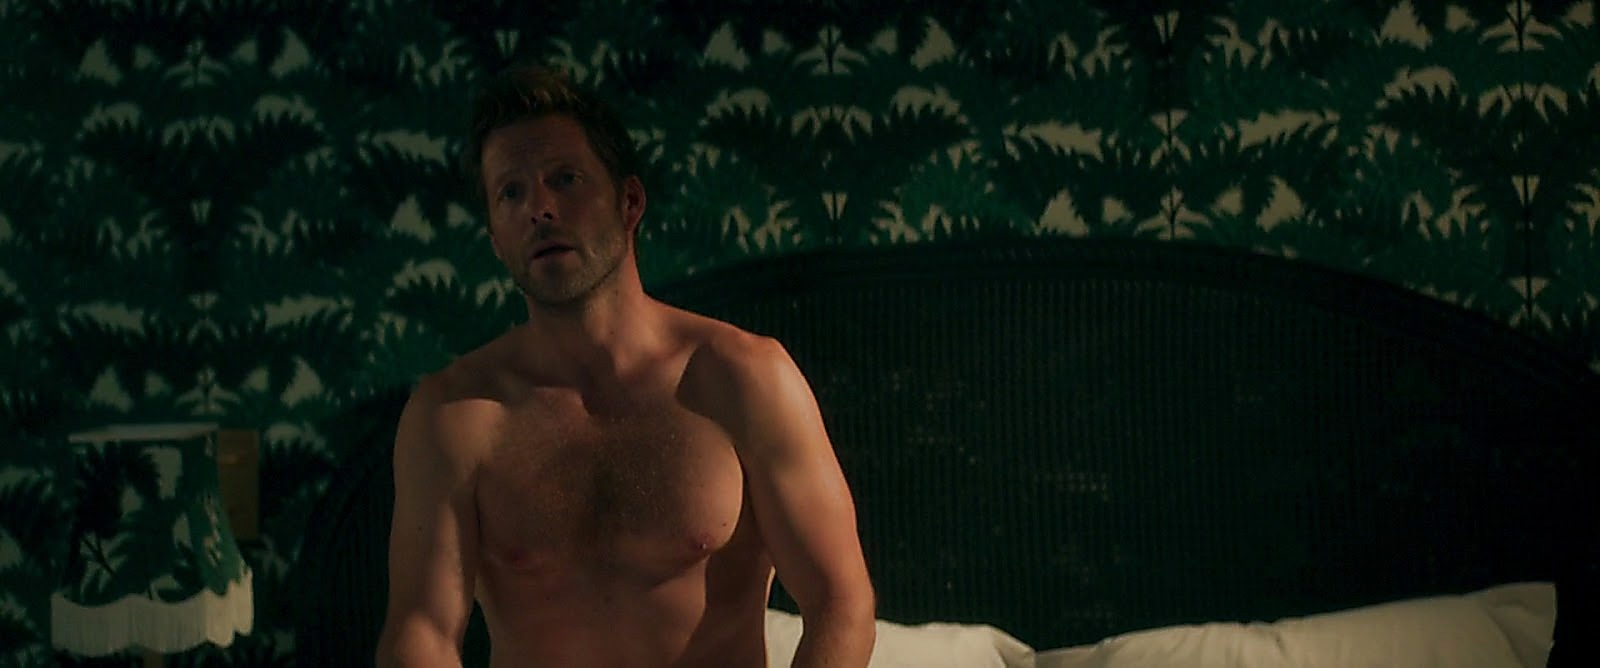 Jamie Bamber sexy shirtless scene July 19, 2017, 11am